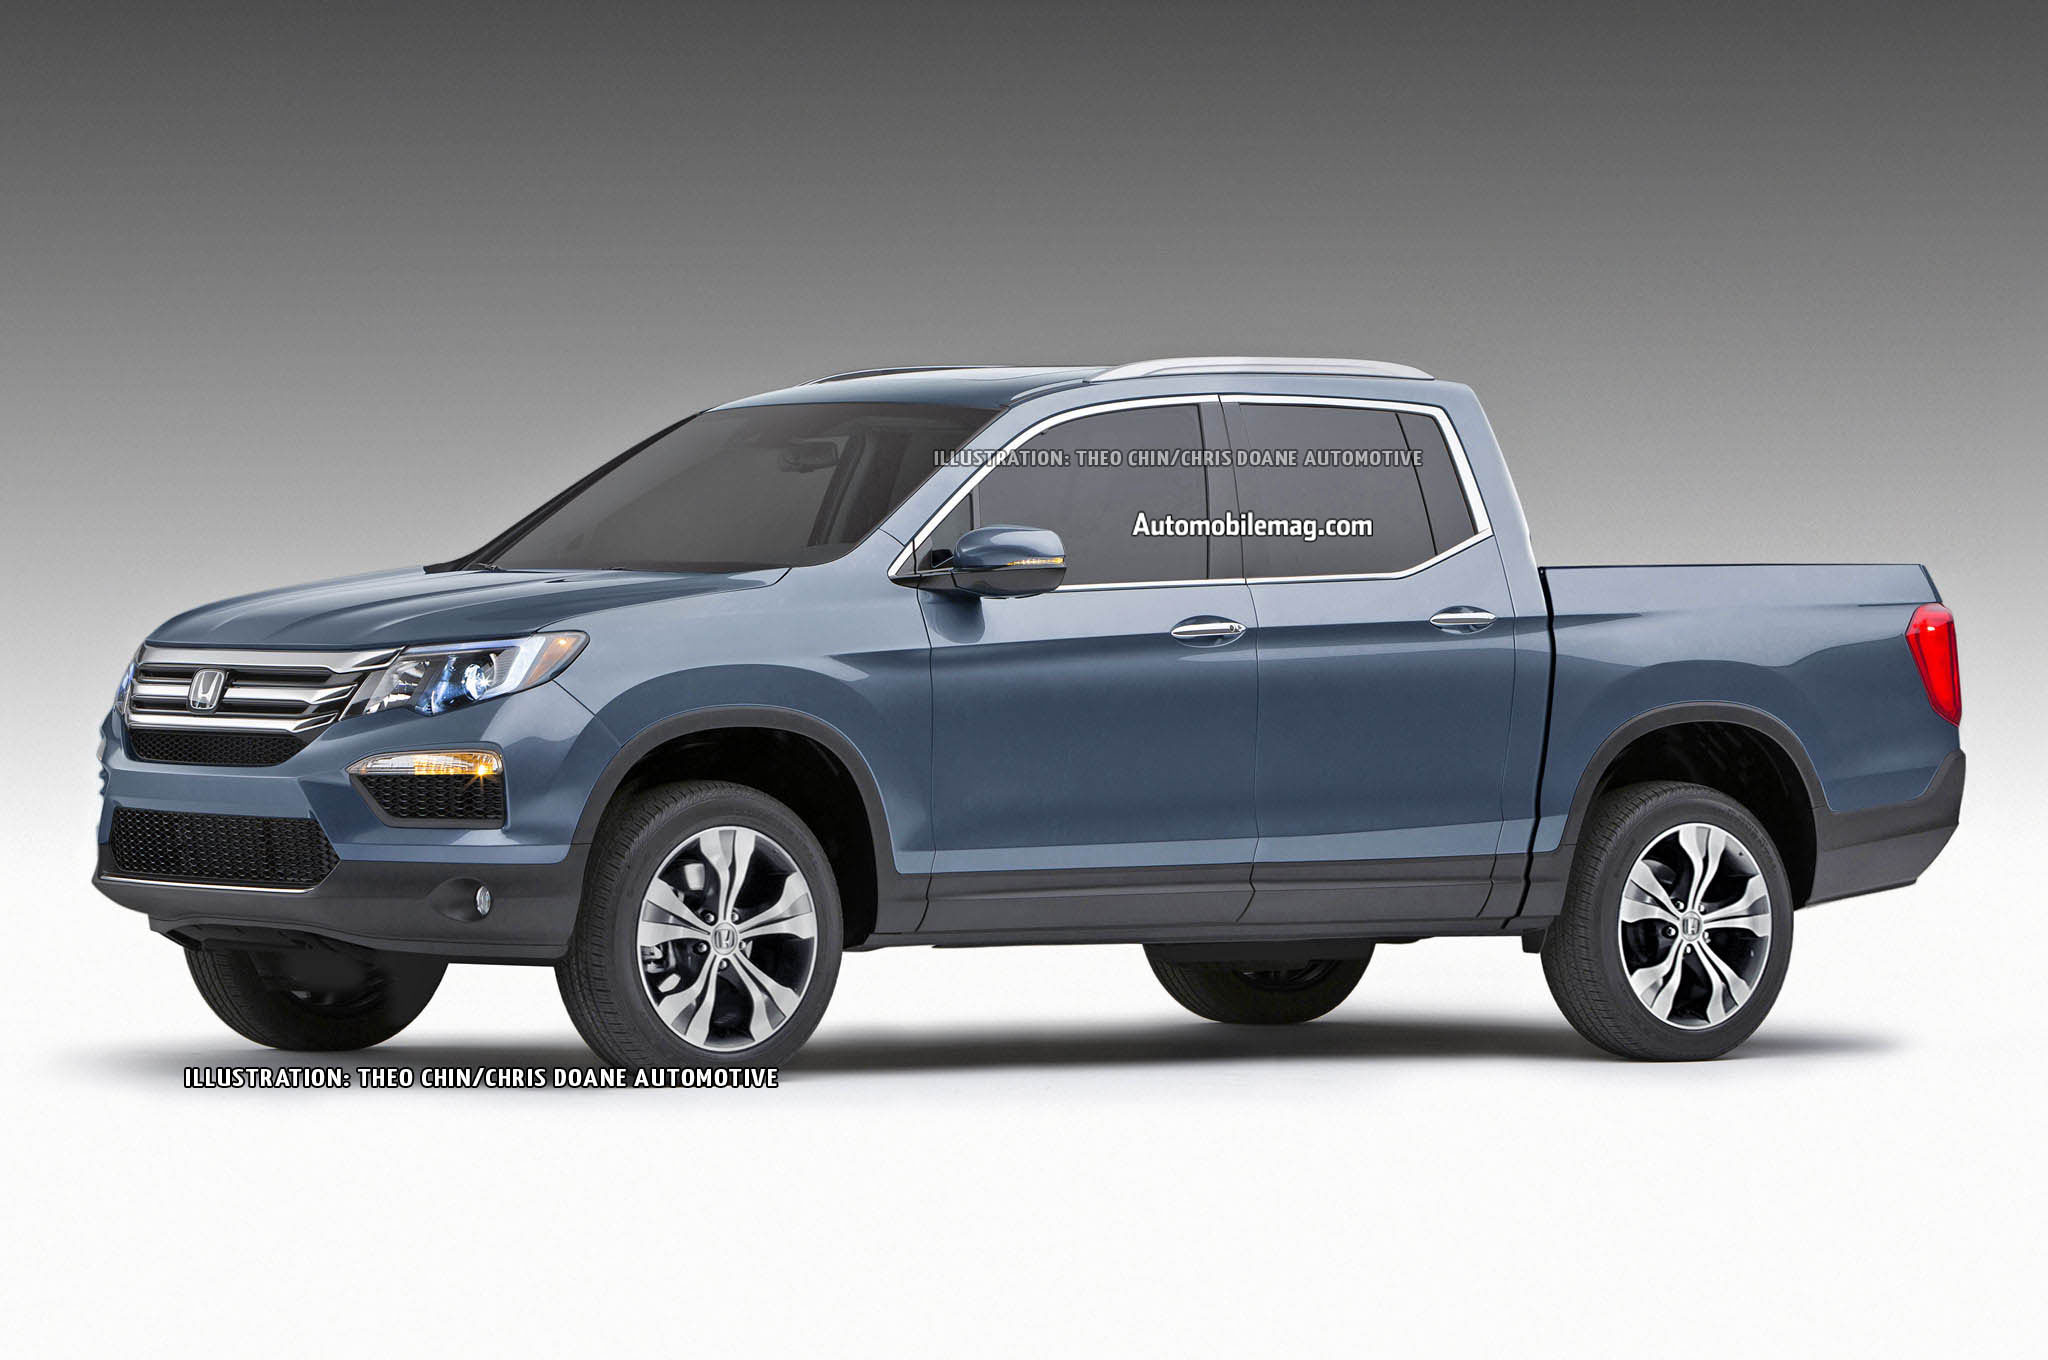 2016 Honda Ridgeline Previewed in Renderings